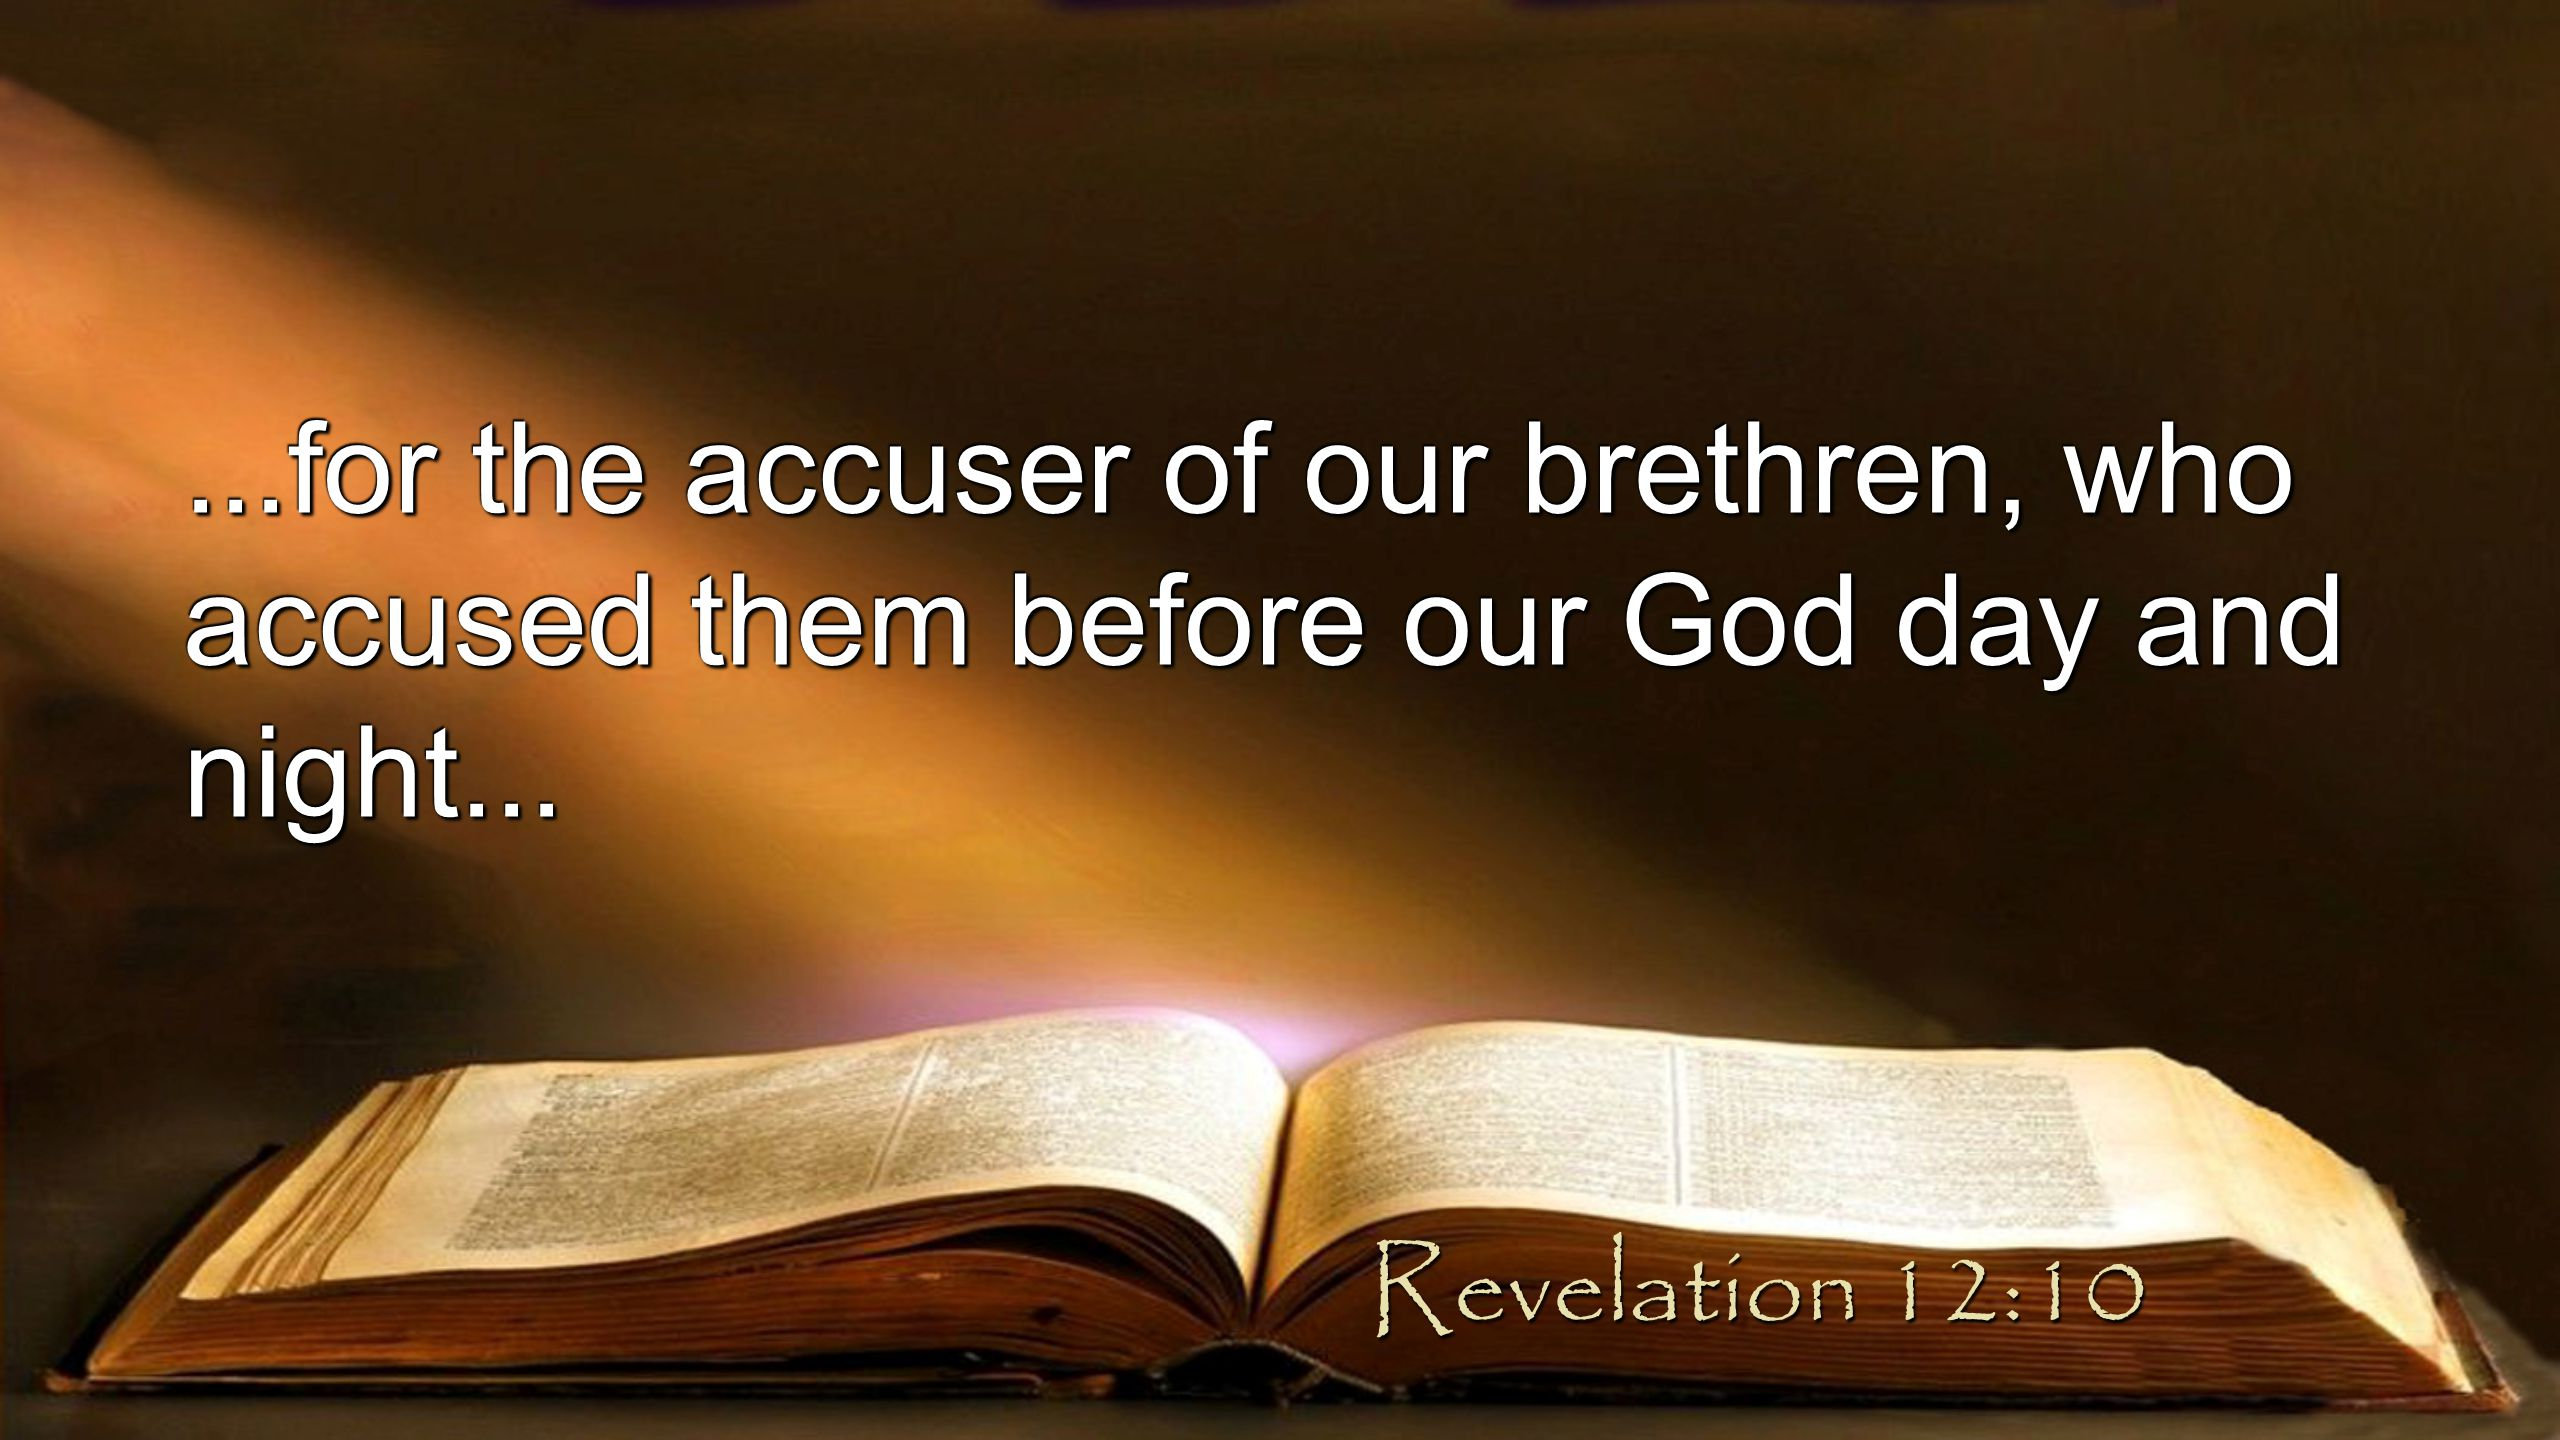 ...for the accuser of our brethren, who accused them before our God day and night...